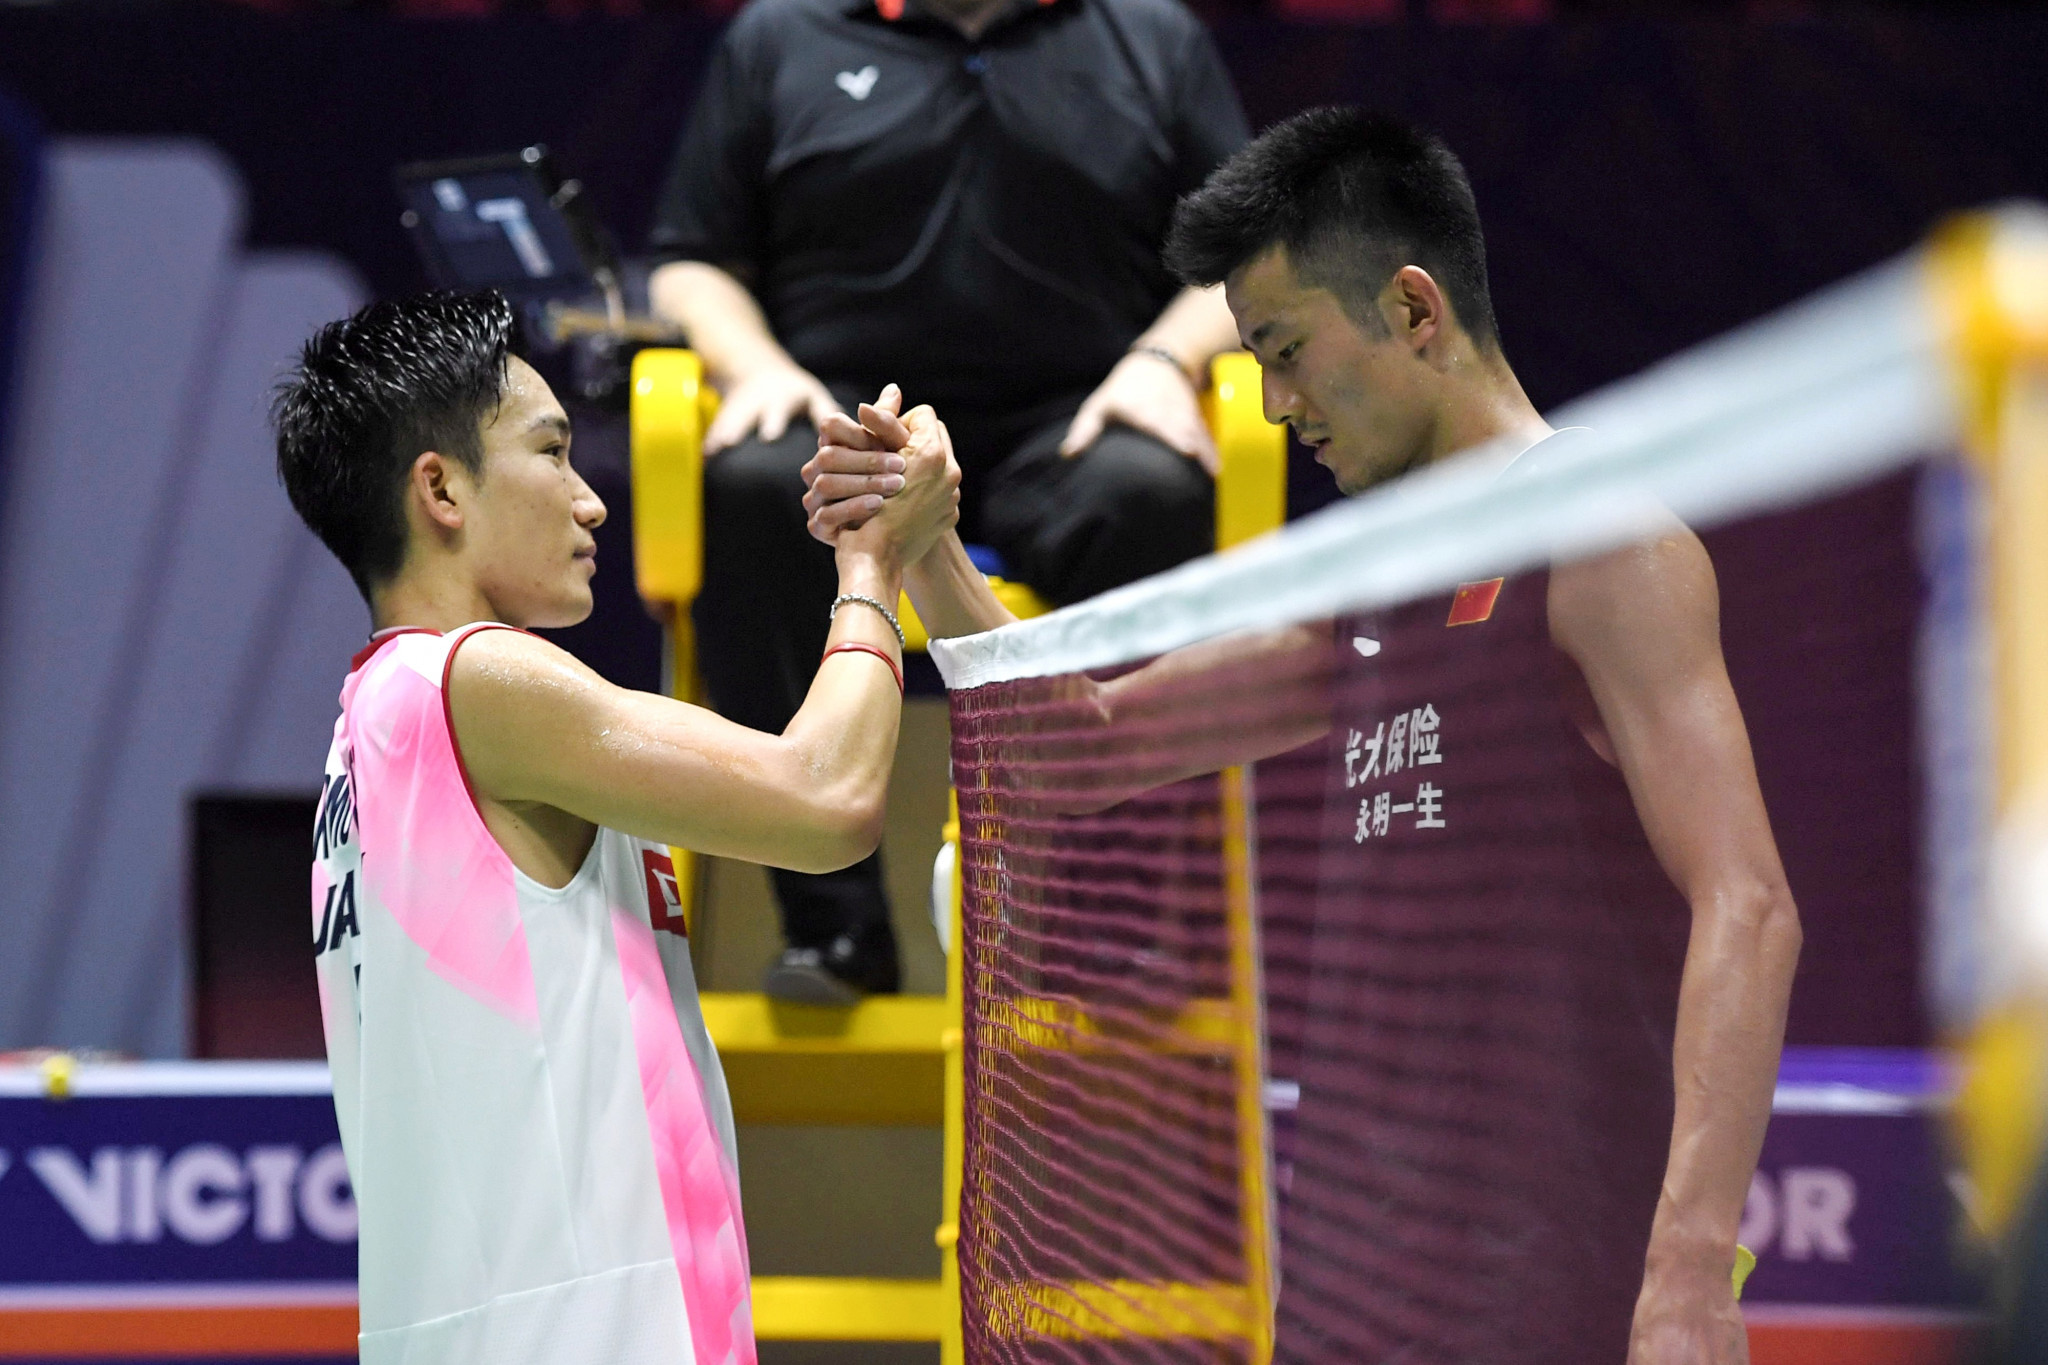 Kento Momota will face Chen Long in the men's singles final at the BWF Denmark Open in Odense ©Getty Images